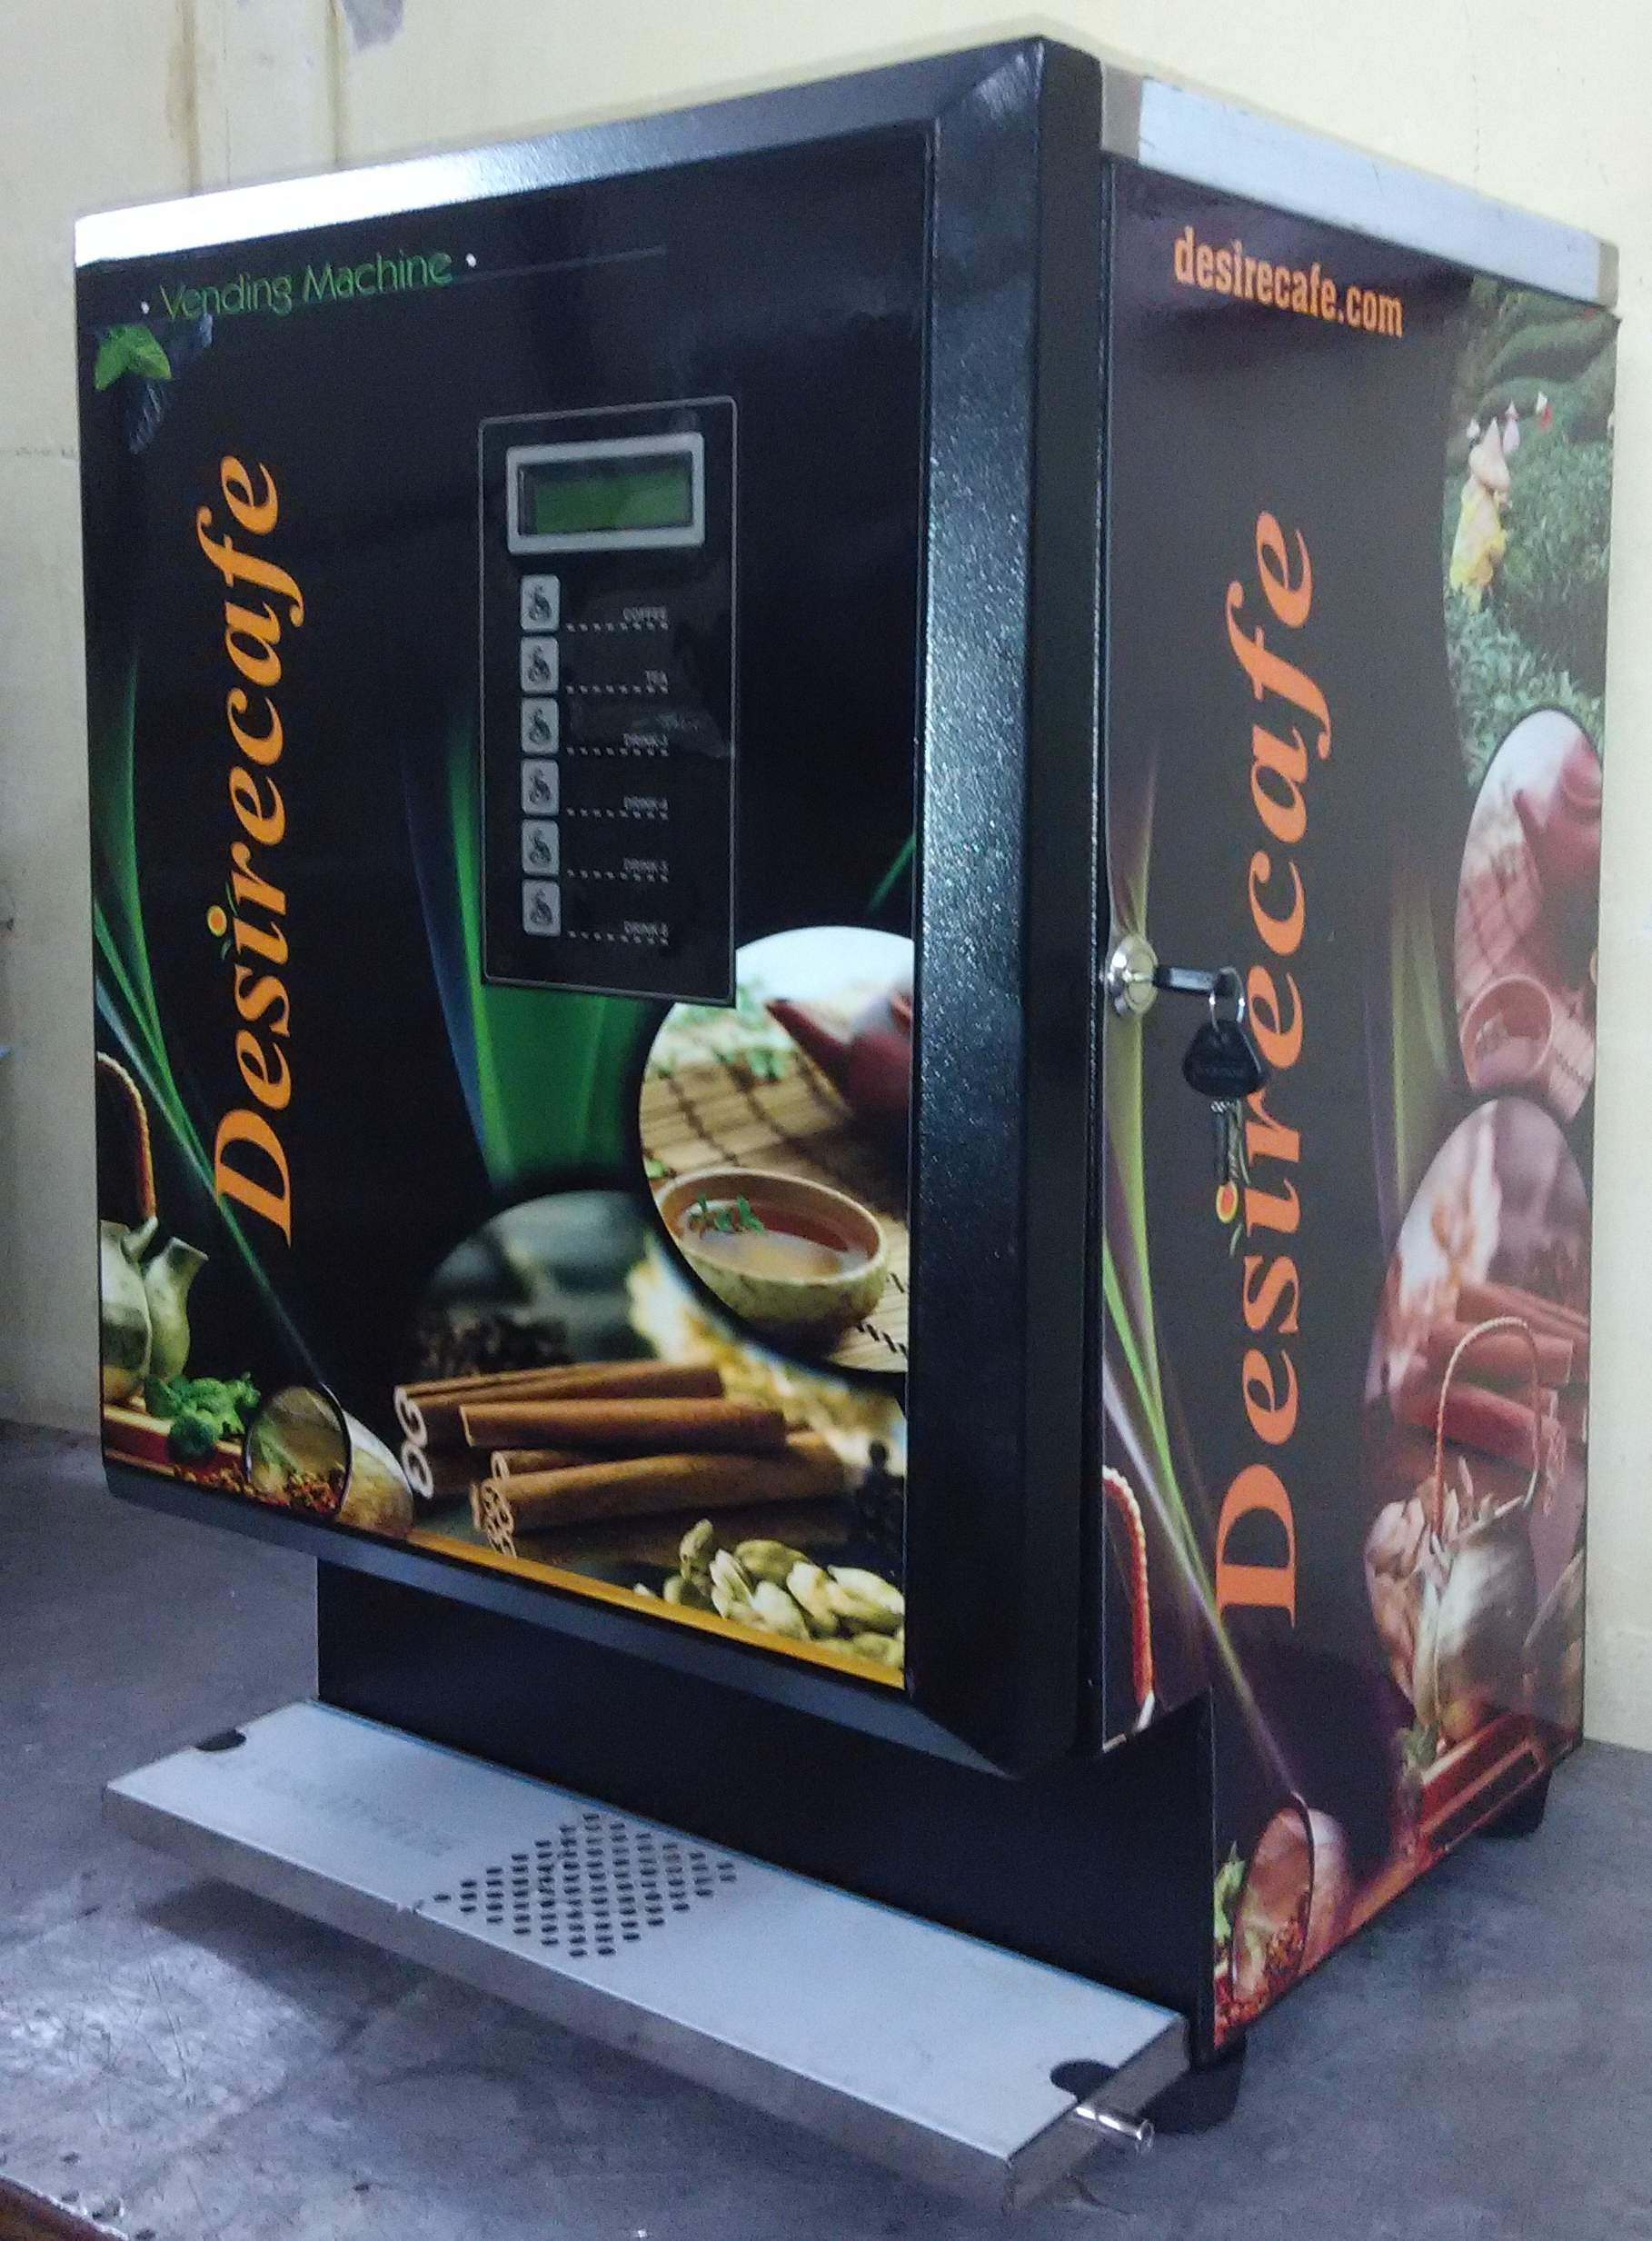 Desire Cafe Vending Private Limited